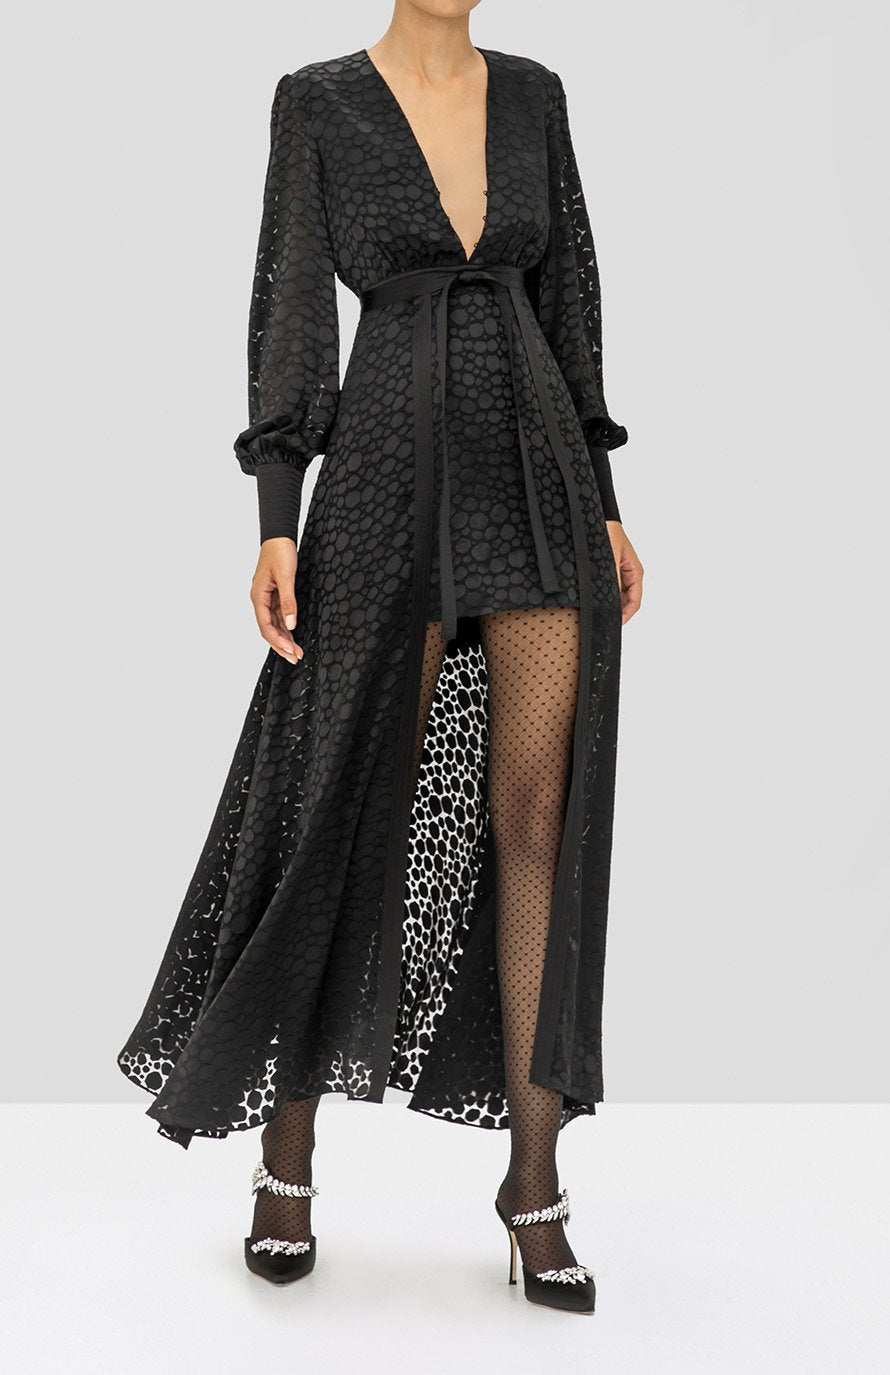 Alexis Cordelia Dress in Black from the Holiday 2019 Ready To Wear Collection